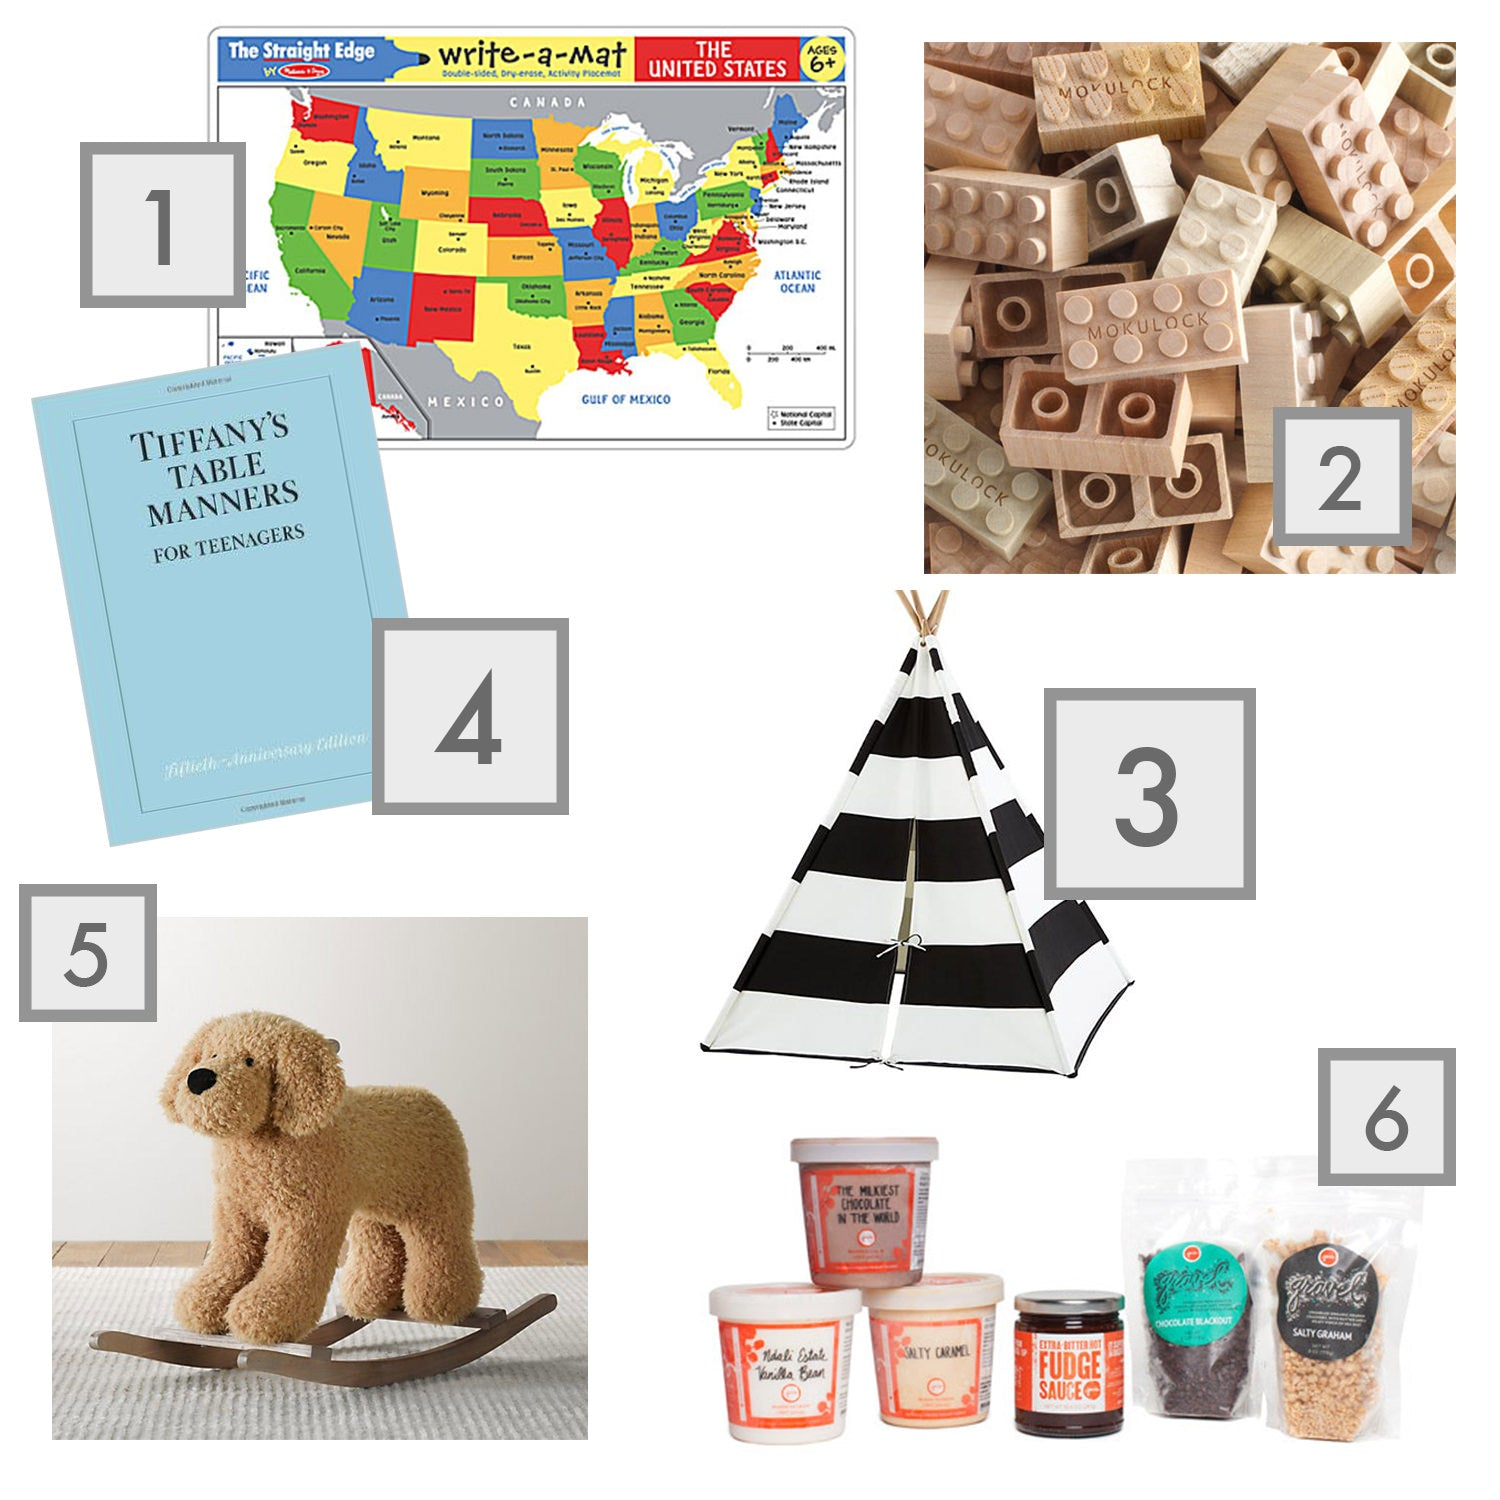 State Map Placemats, Melissa & Doug, Wooden Legos, Mokulock, A Teepee to Call Your Own, Teepee, The Land of Nod, Table Manners for Teenagers, Table Manners book, Tiffany's, Plush Animal Rocker, Restoration Hardware kids toys,  Build Your Own Sundae Kit, Jeni's icecream